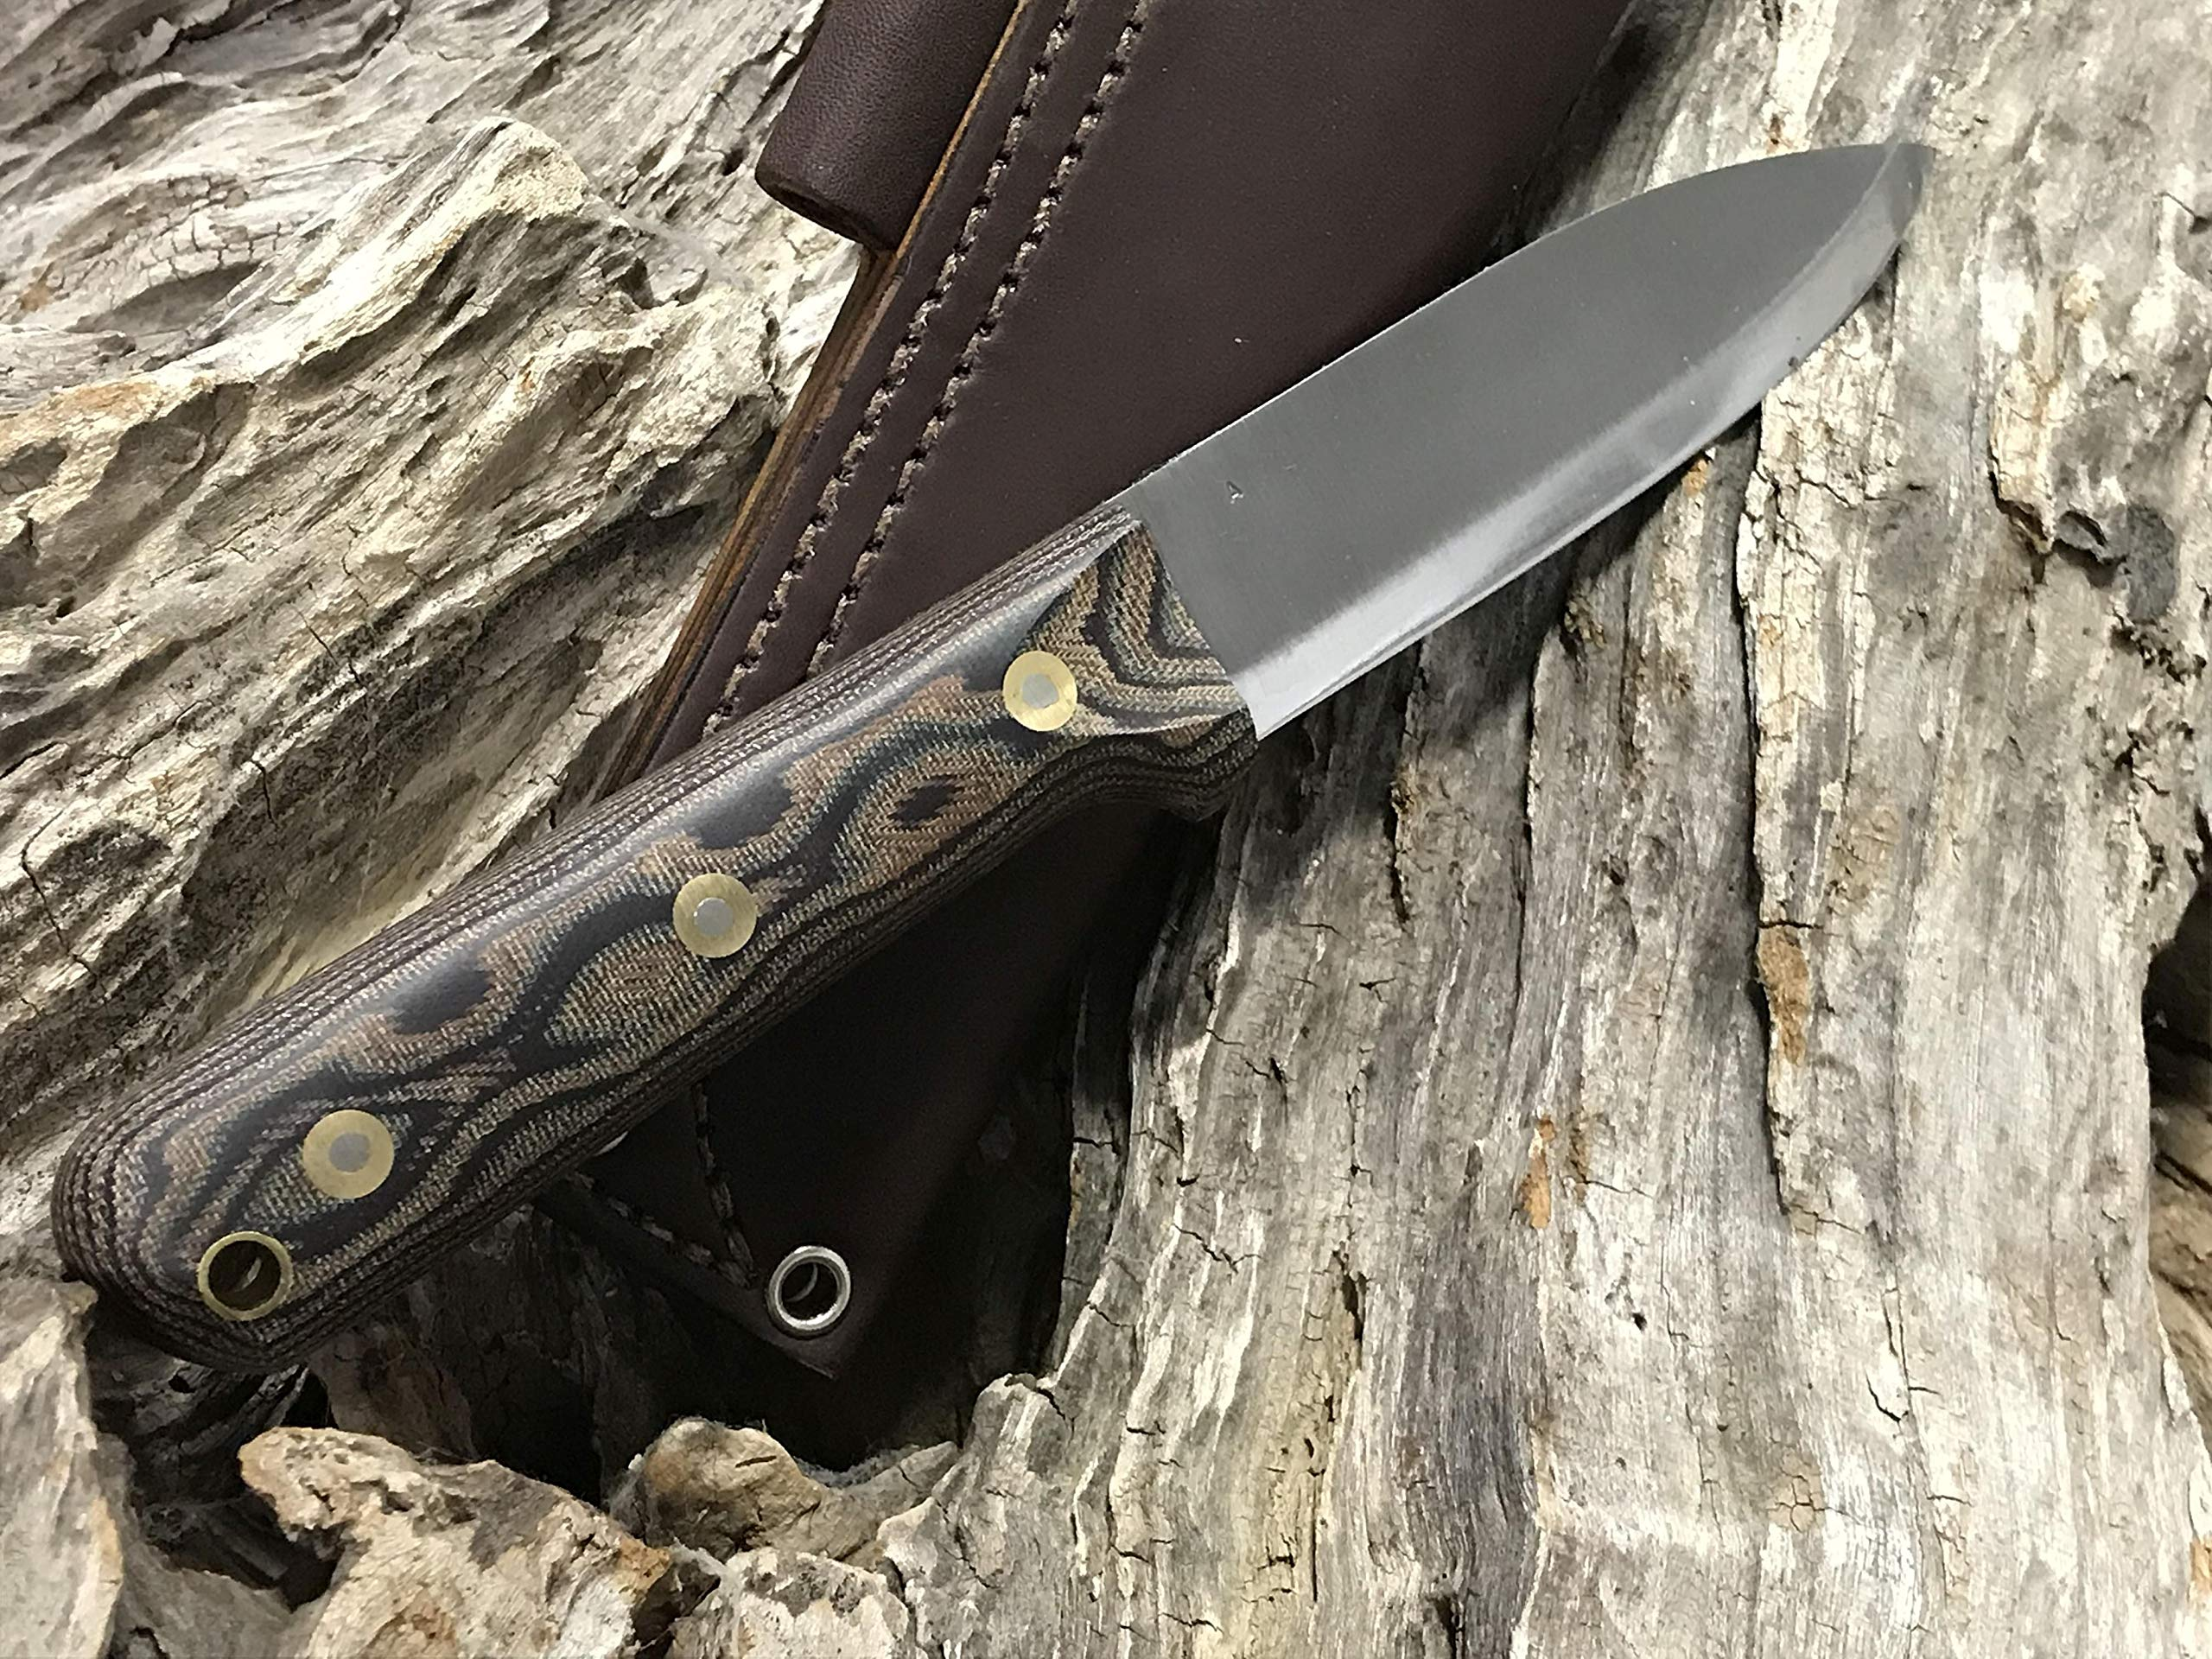 L.T. Wright Handcrafted Knives Genesis w/Scandi Grind, A2 Steel (Python) by L.T. Wright Handcrafted Knives (Image #5)